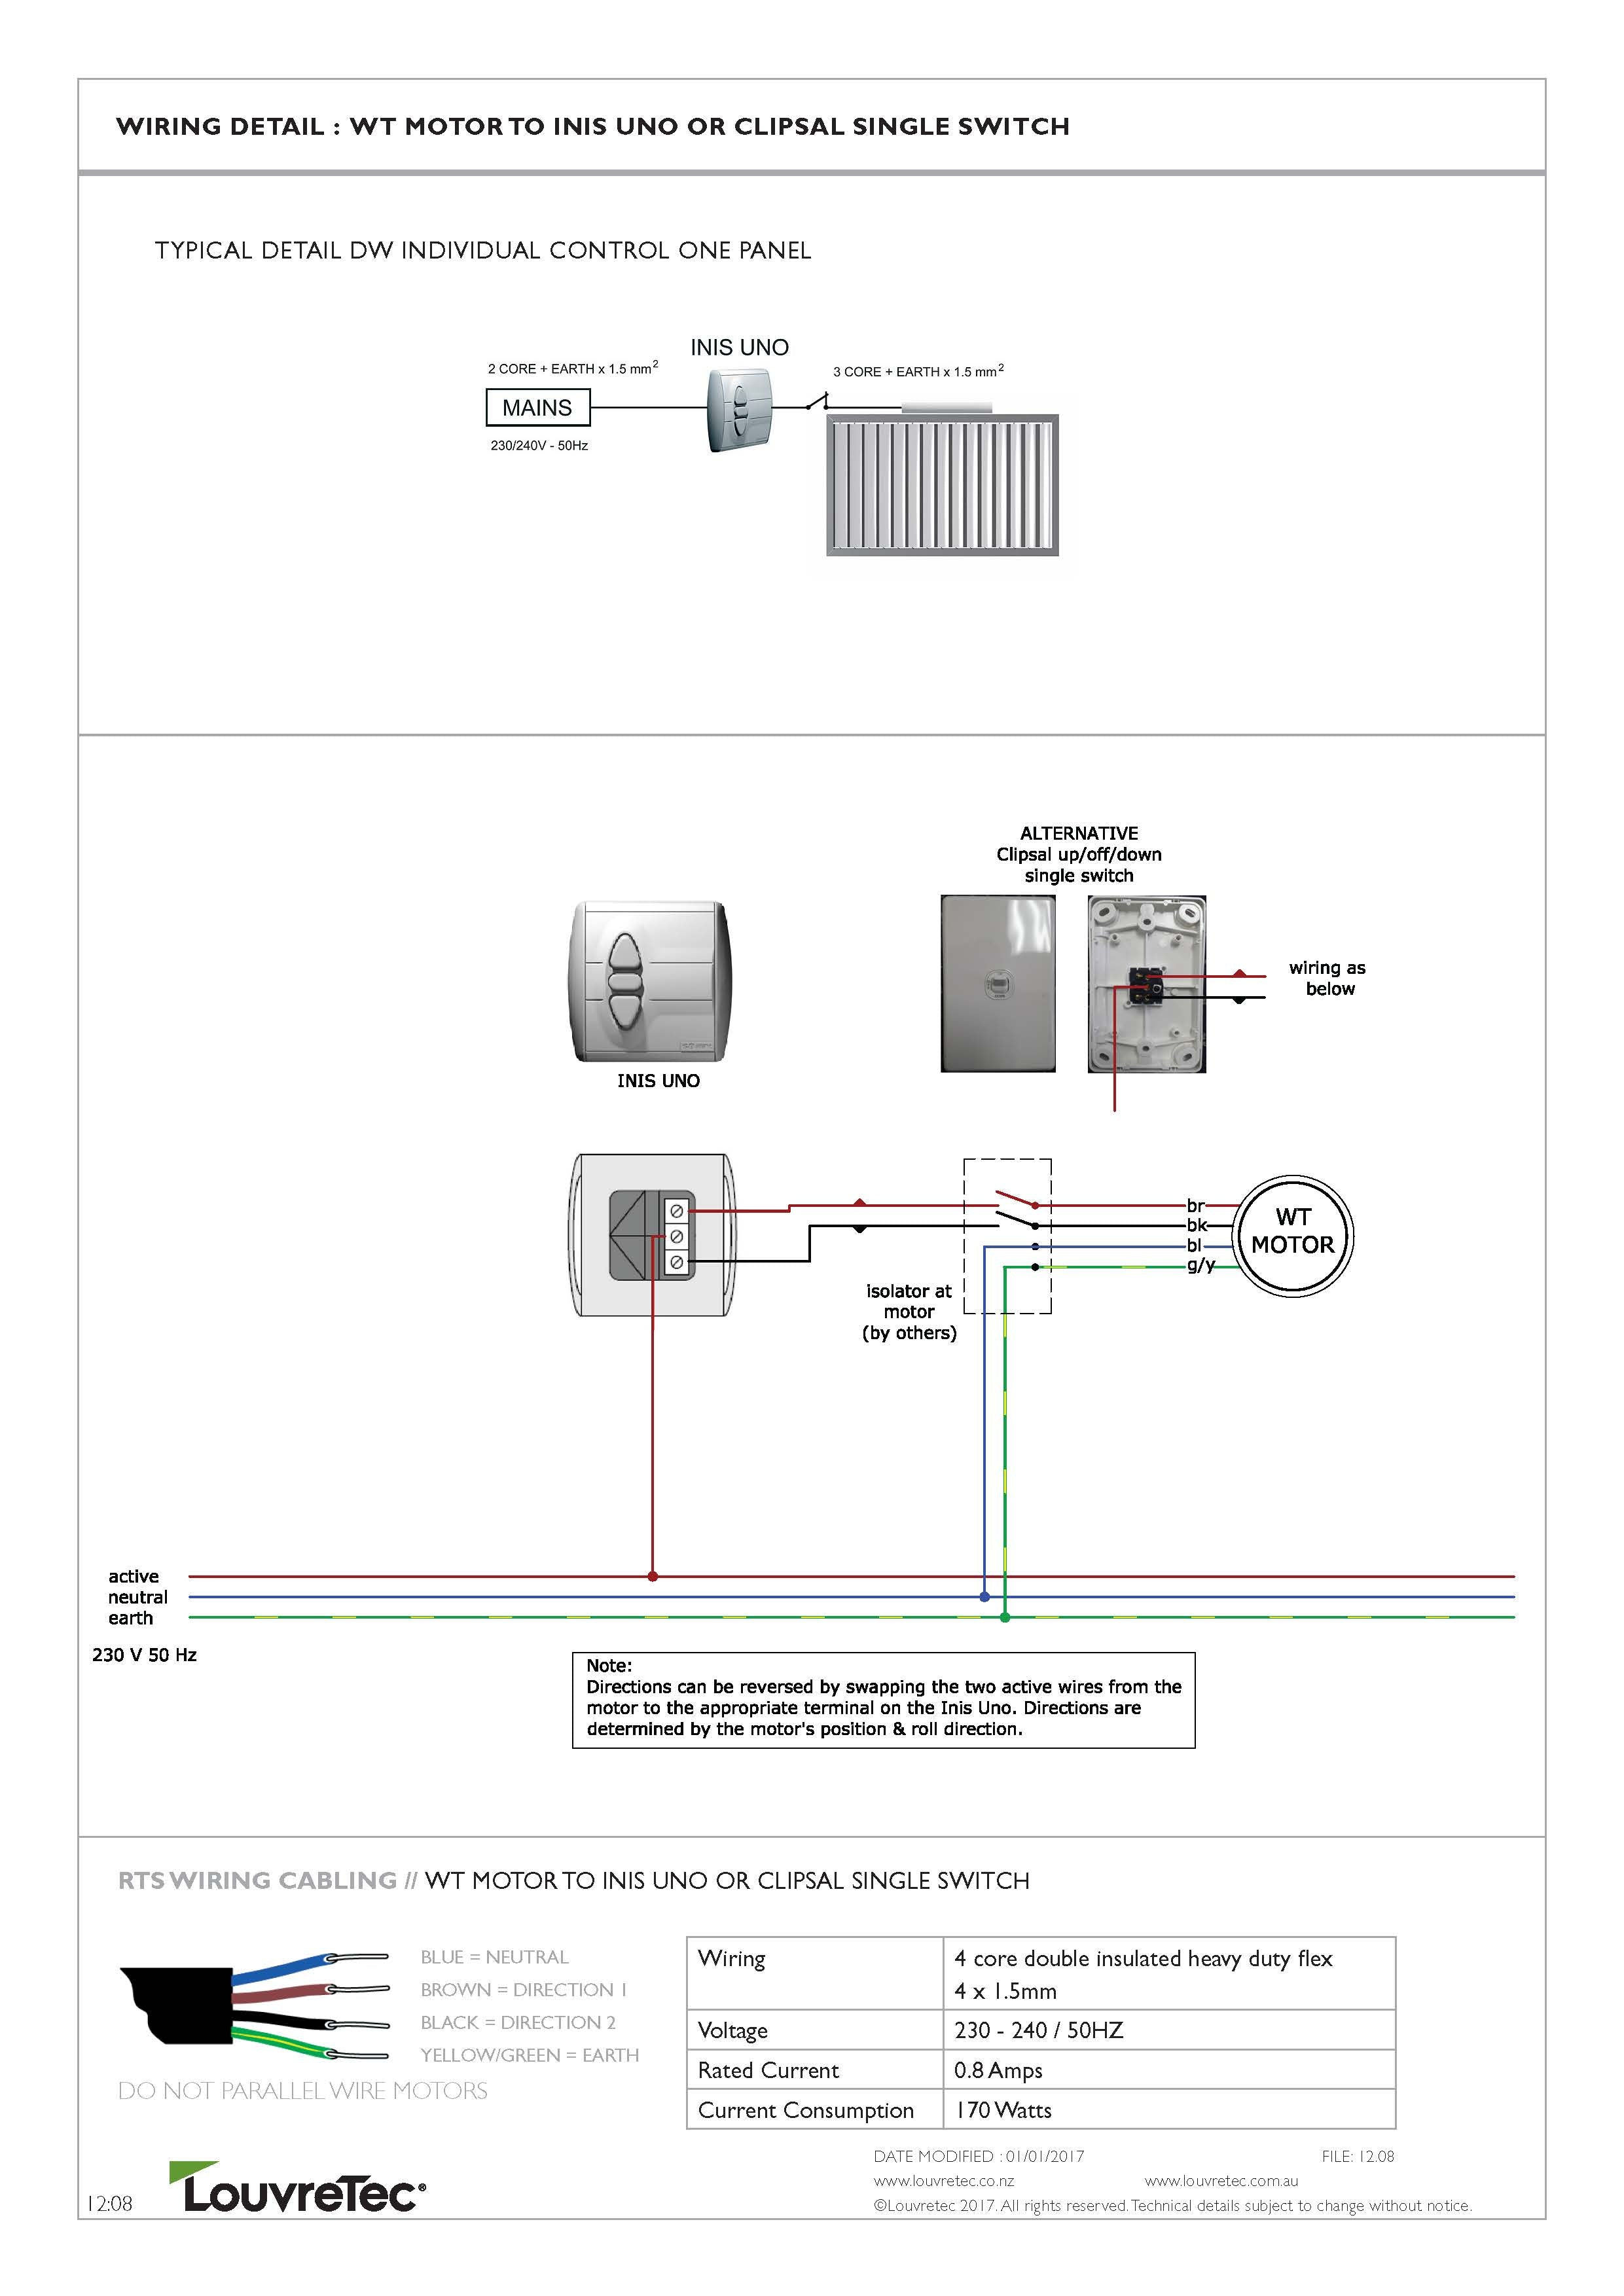 Kenwood Excelon Ddx7015 Wiring Diagram Schematics Diagrams Images For Chery Qq3 Codehot3pricecode Manual